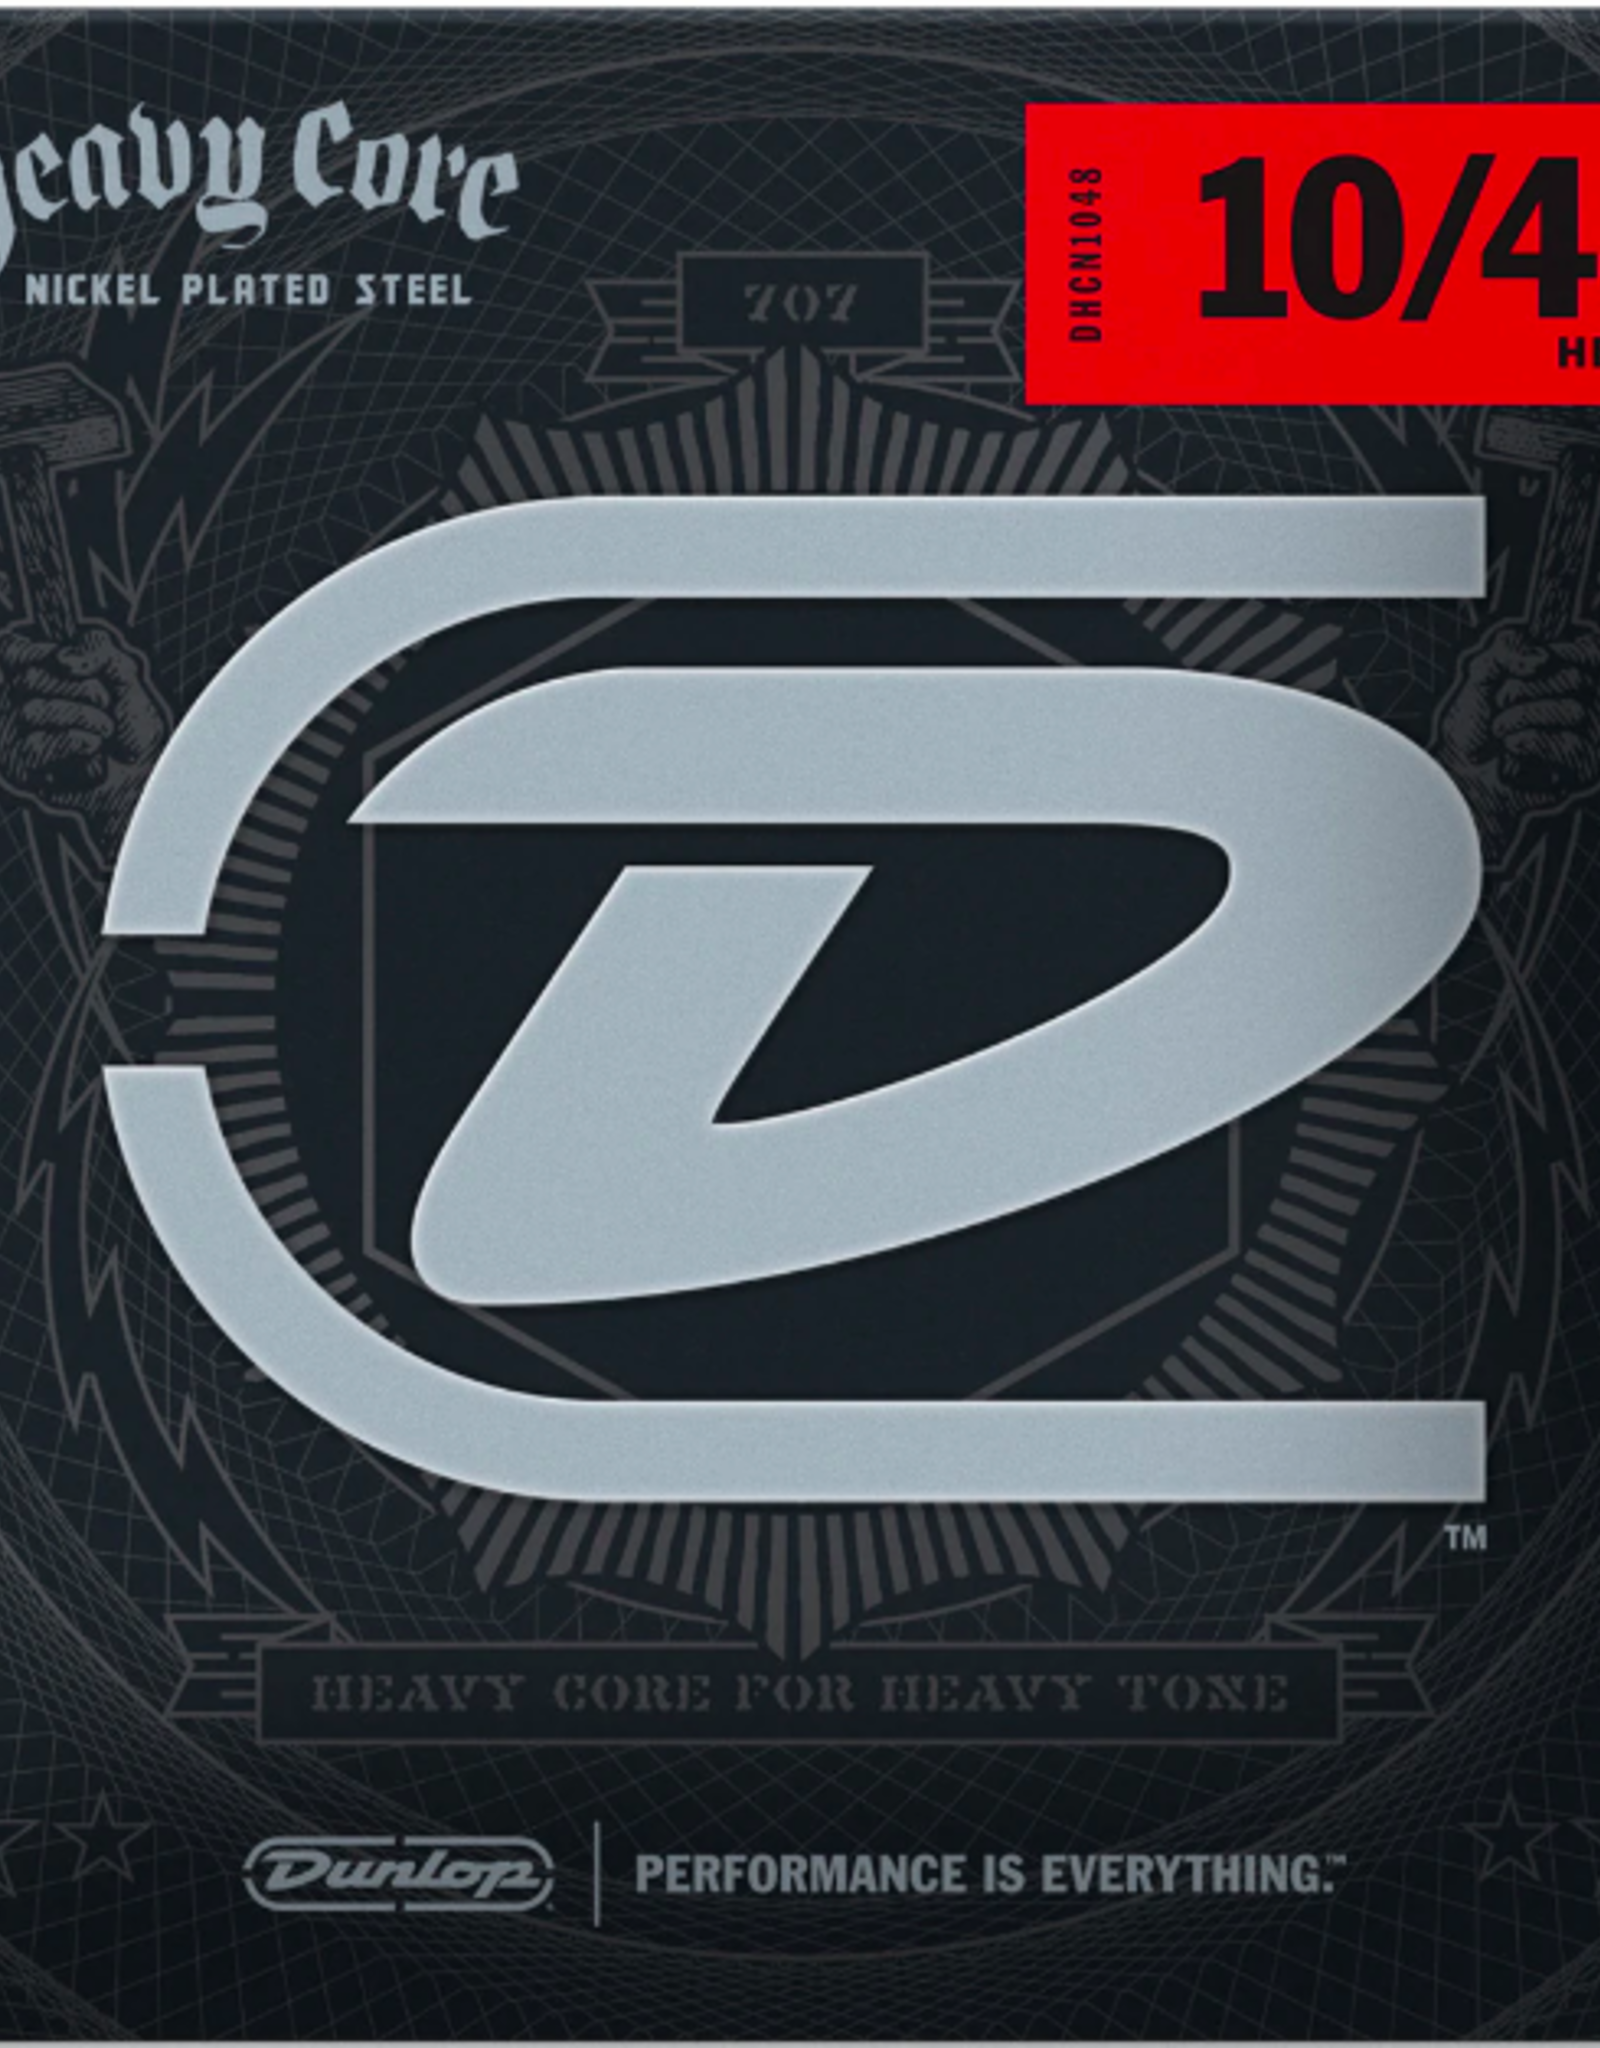 Dunlop Dunlop DHCN1048 Heavy Core Guitar Strings, Heavy, .010–.048